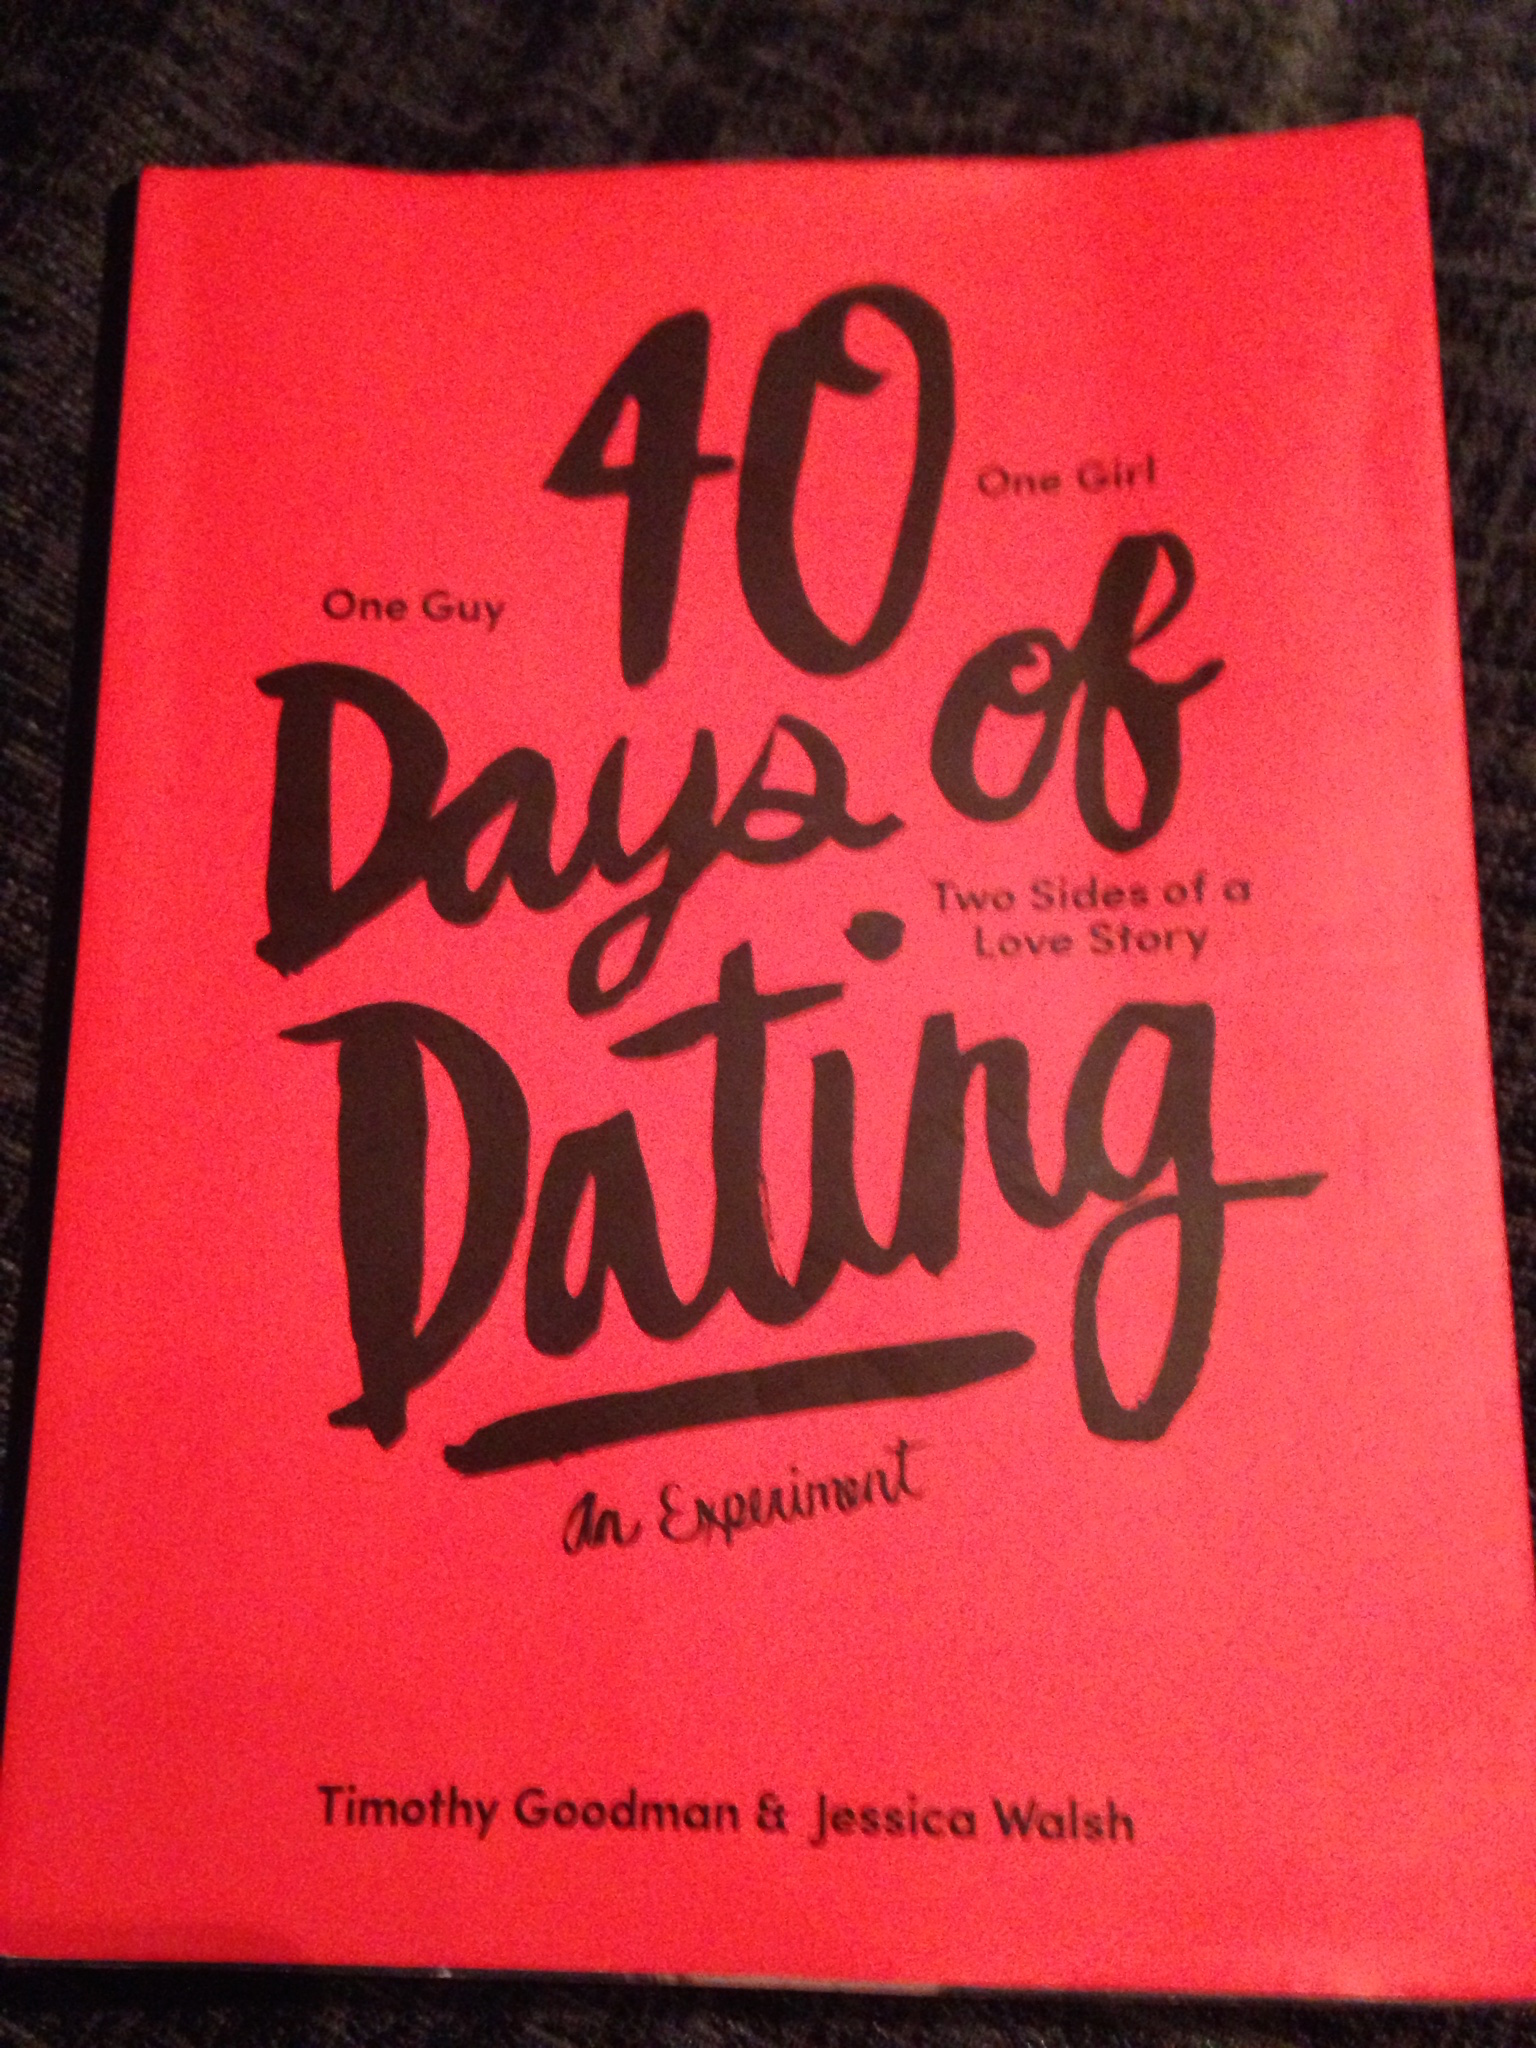 dating at 40 blog